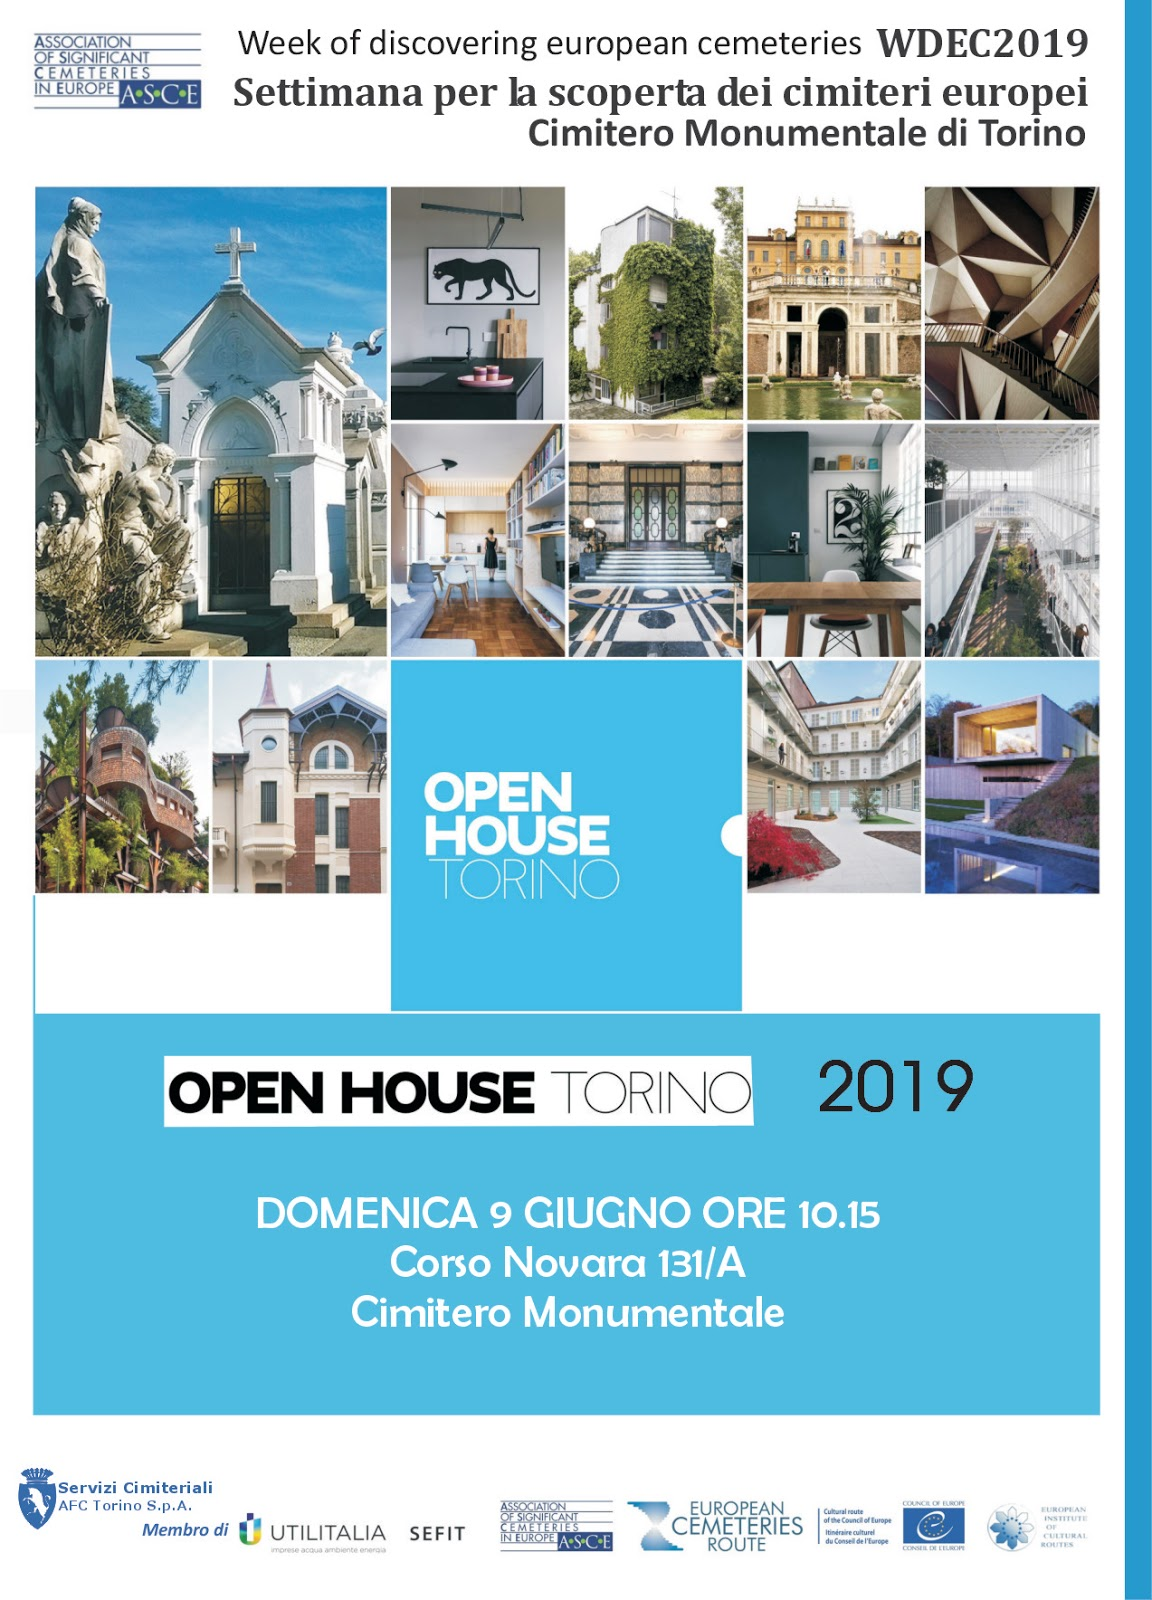 Association of Significant Cemeteries of Europe: WDEC 2019 OPEN